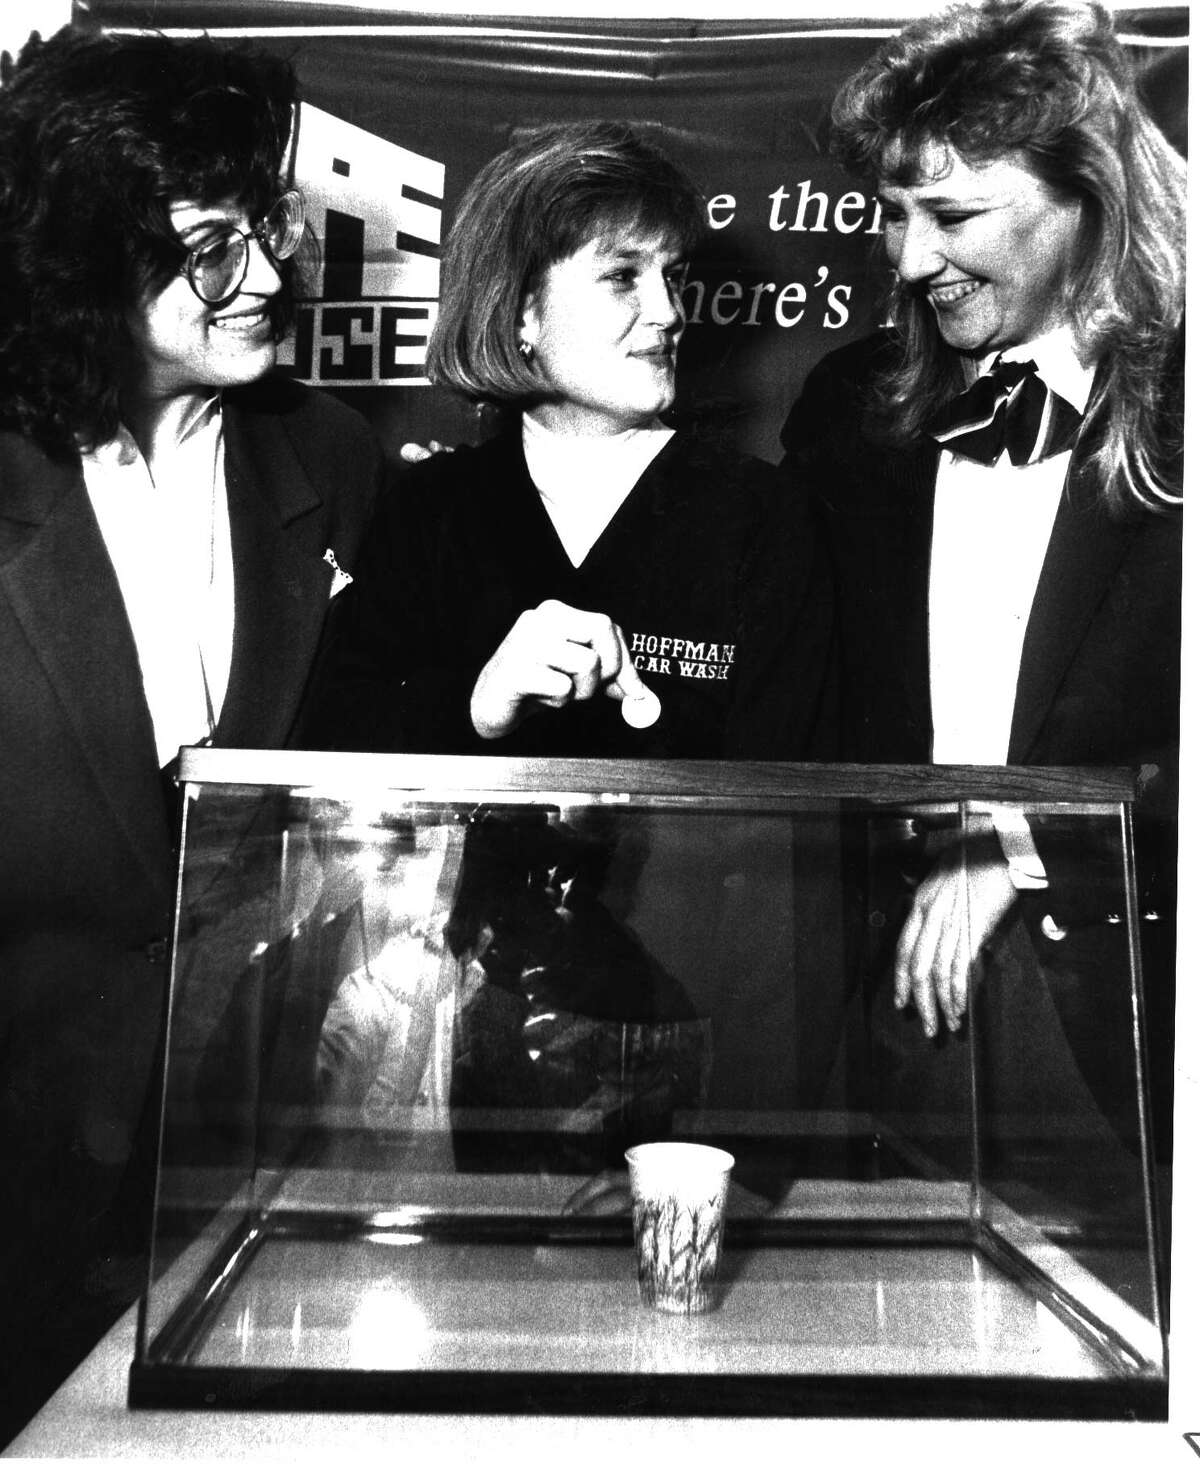 Arlene Murphy of Hope House and Carrie Hoffman of the Hoffman car wash, and Kerry Pegler assistant manager of Hoyt Theater drop a coin in cup in fish tank to win a movie pass. 3/4/1992.